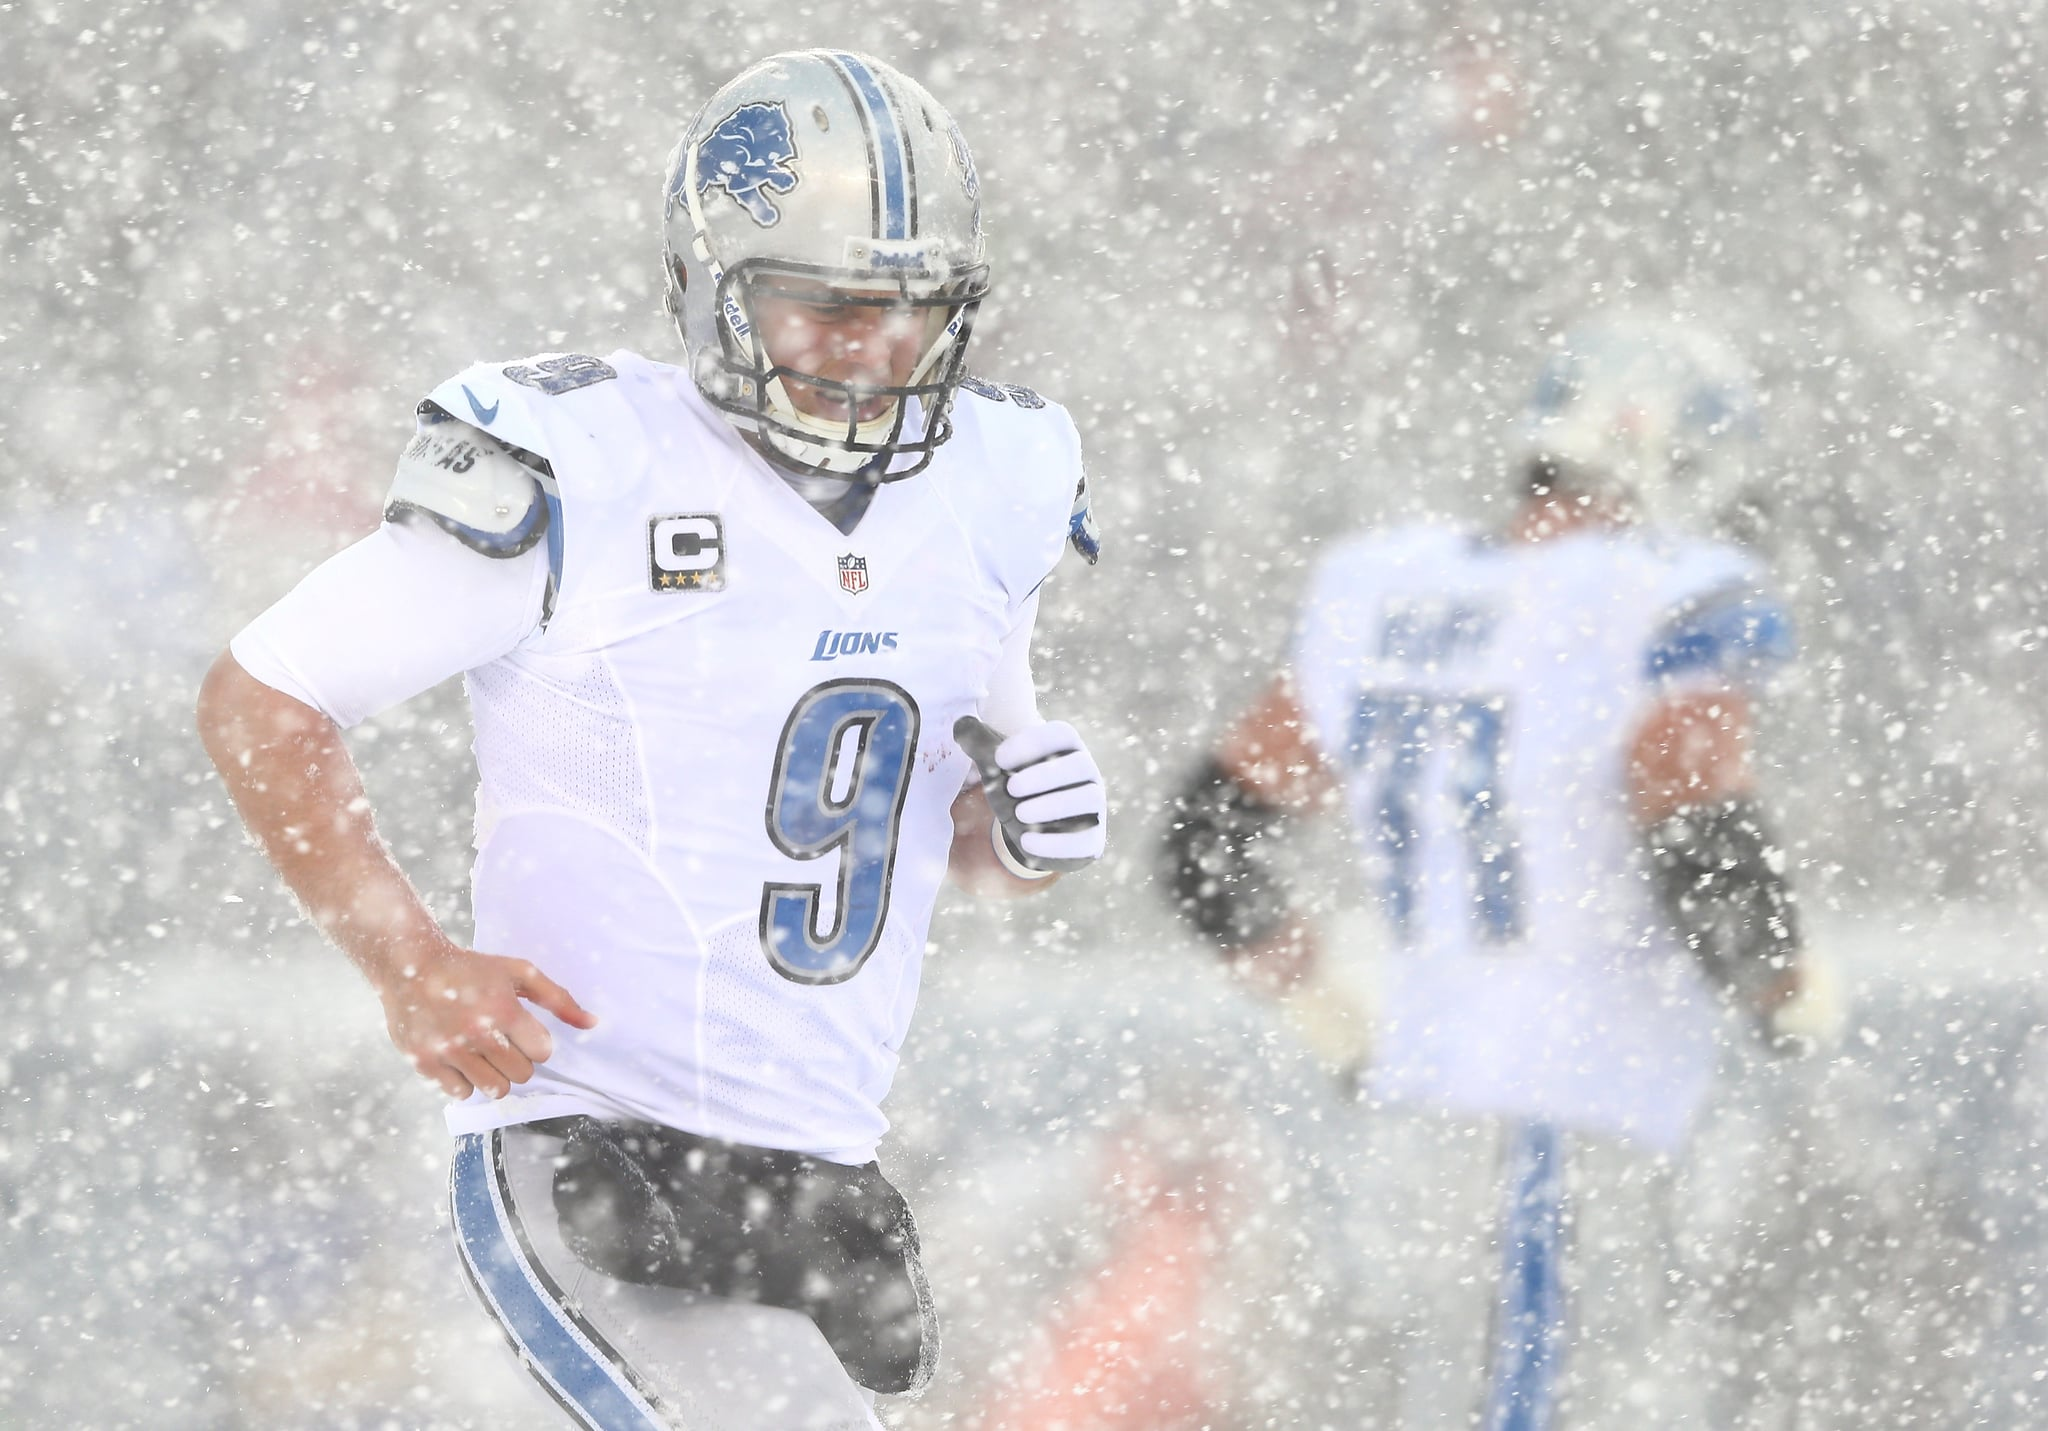 The Detroit Lions' Matthew Stafford ran through the snow during his team's game against the Philadelphia Eagles.